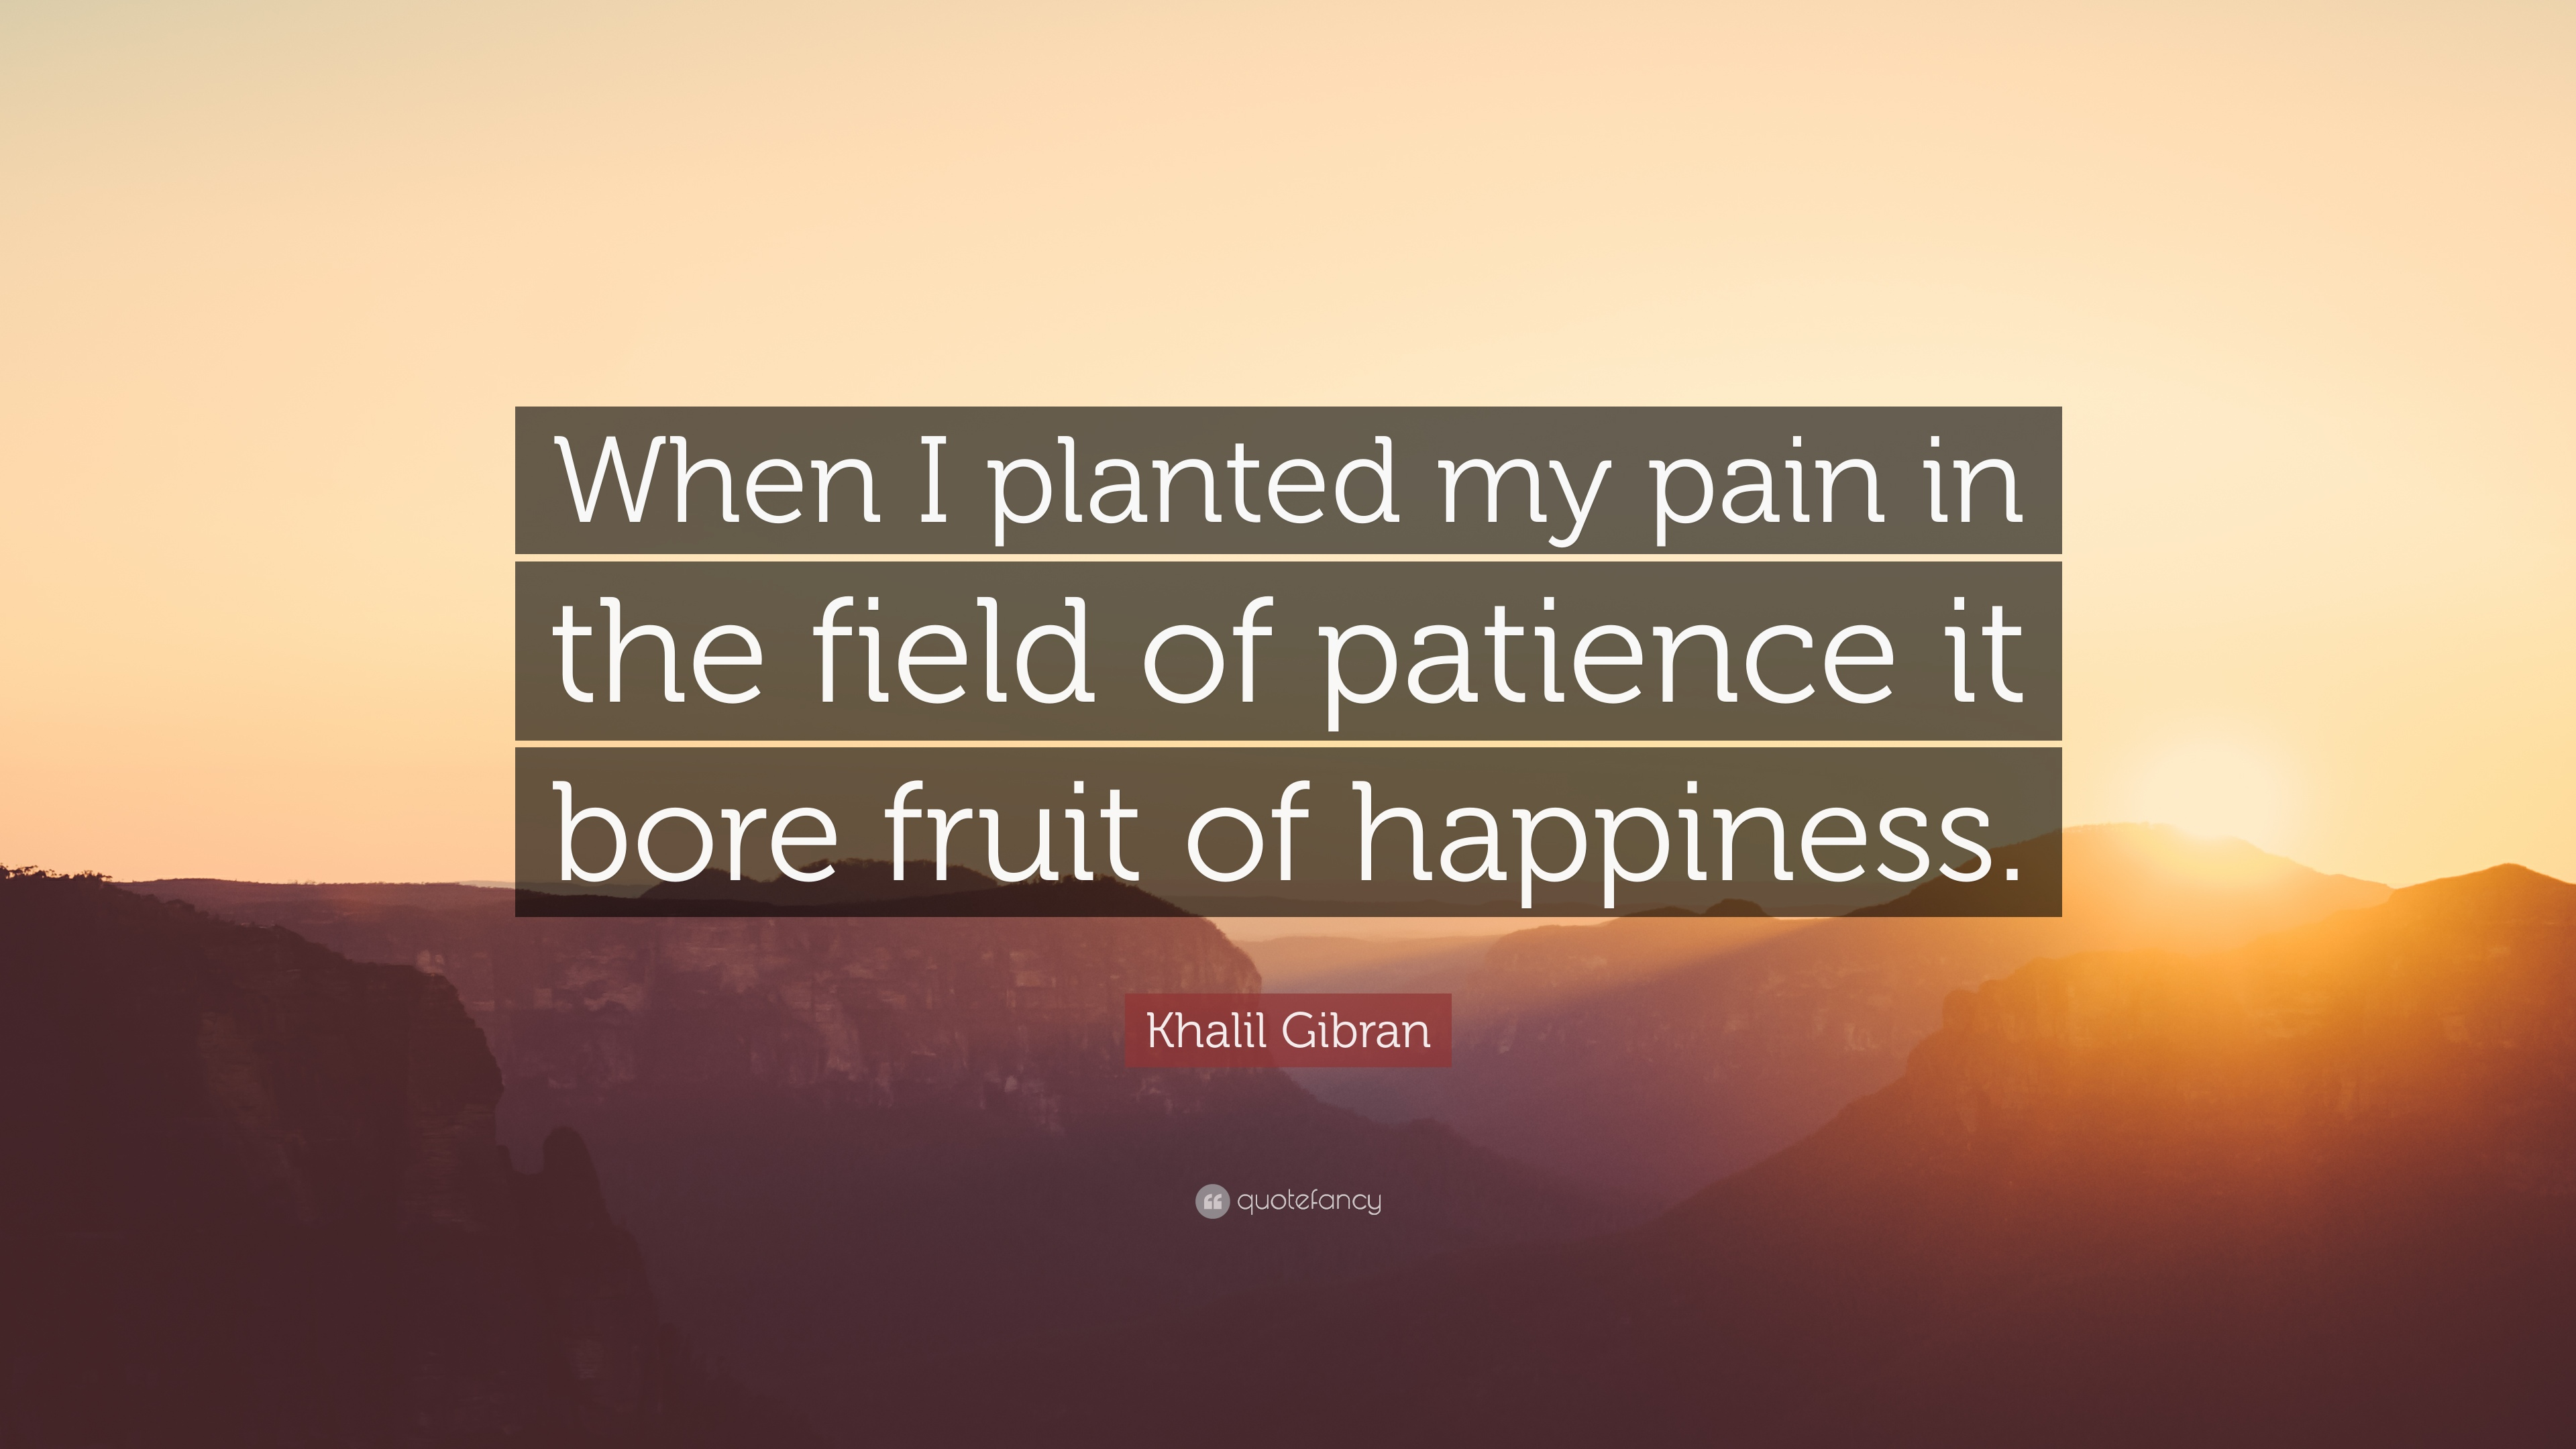 Image of: Lesson Quotes Pain Quotes when Planted My Pain In The Field Of Patience It Bore Quotefancy Pain Quotes 40 Wallpapers Quotefancy